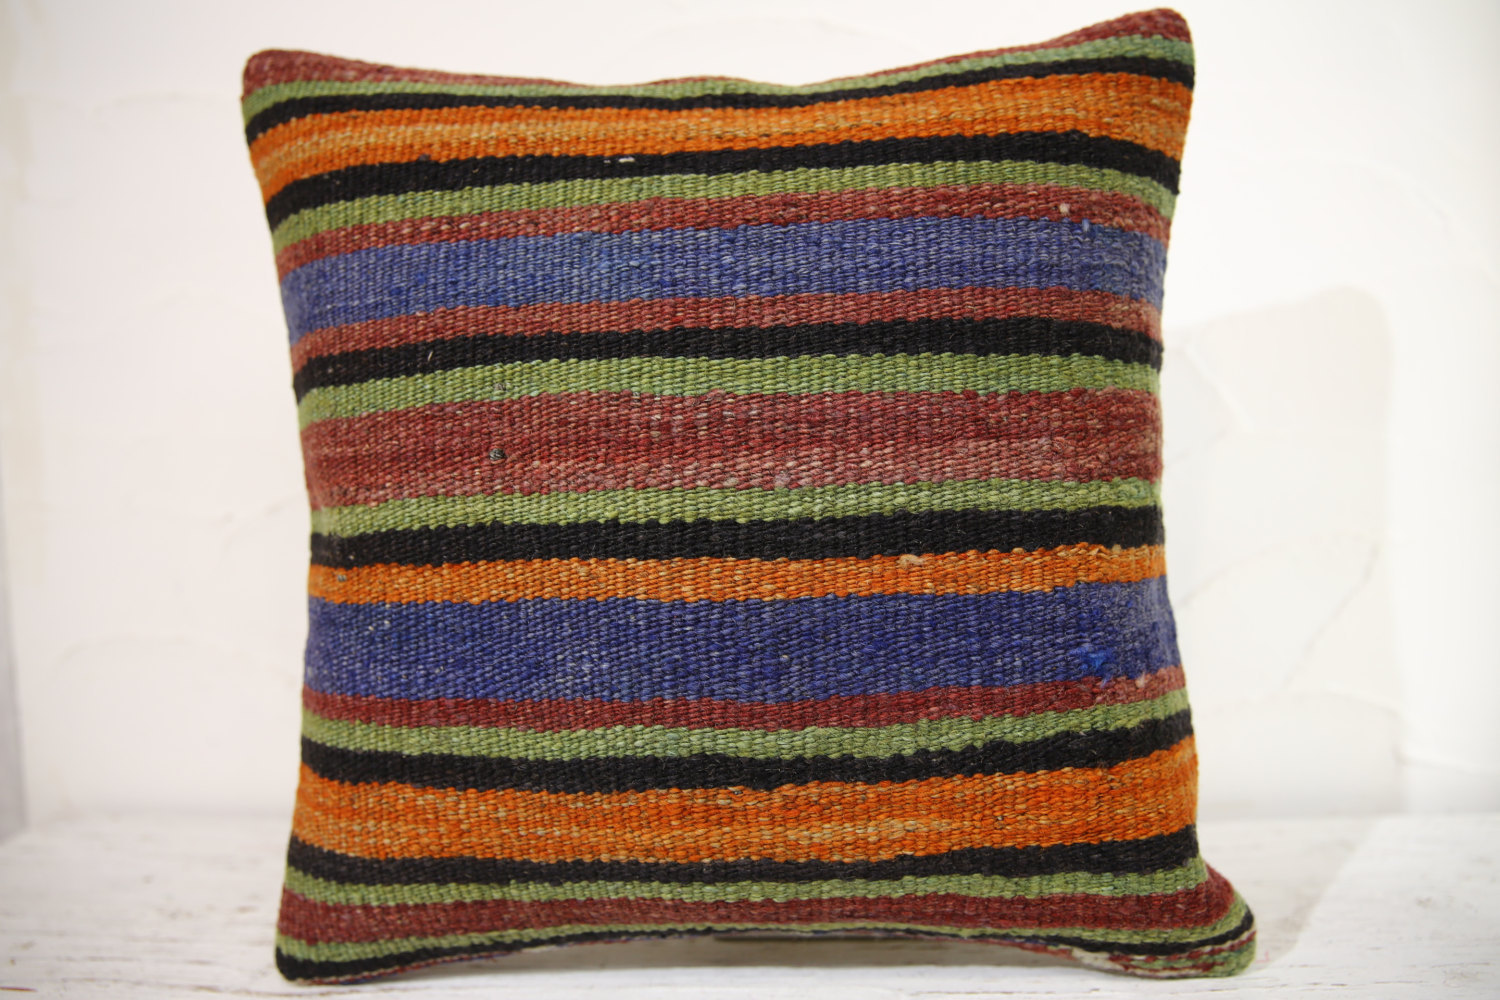 Kilim Pillows | 16x16 | Turkish pillows | 1152 | Ethnic Pillow , Kelim cushion